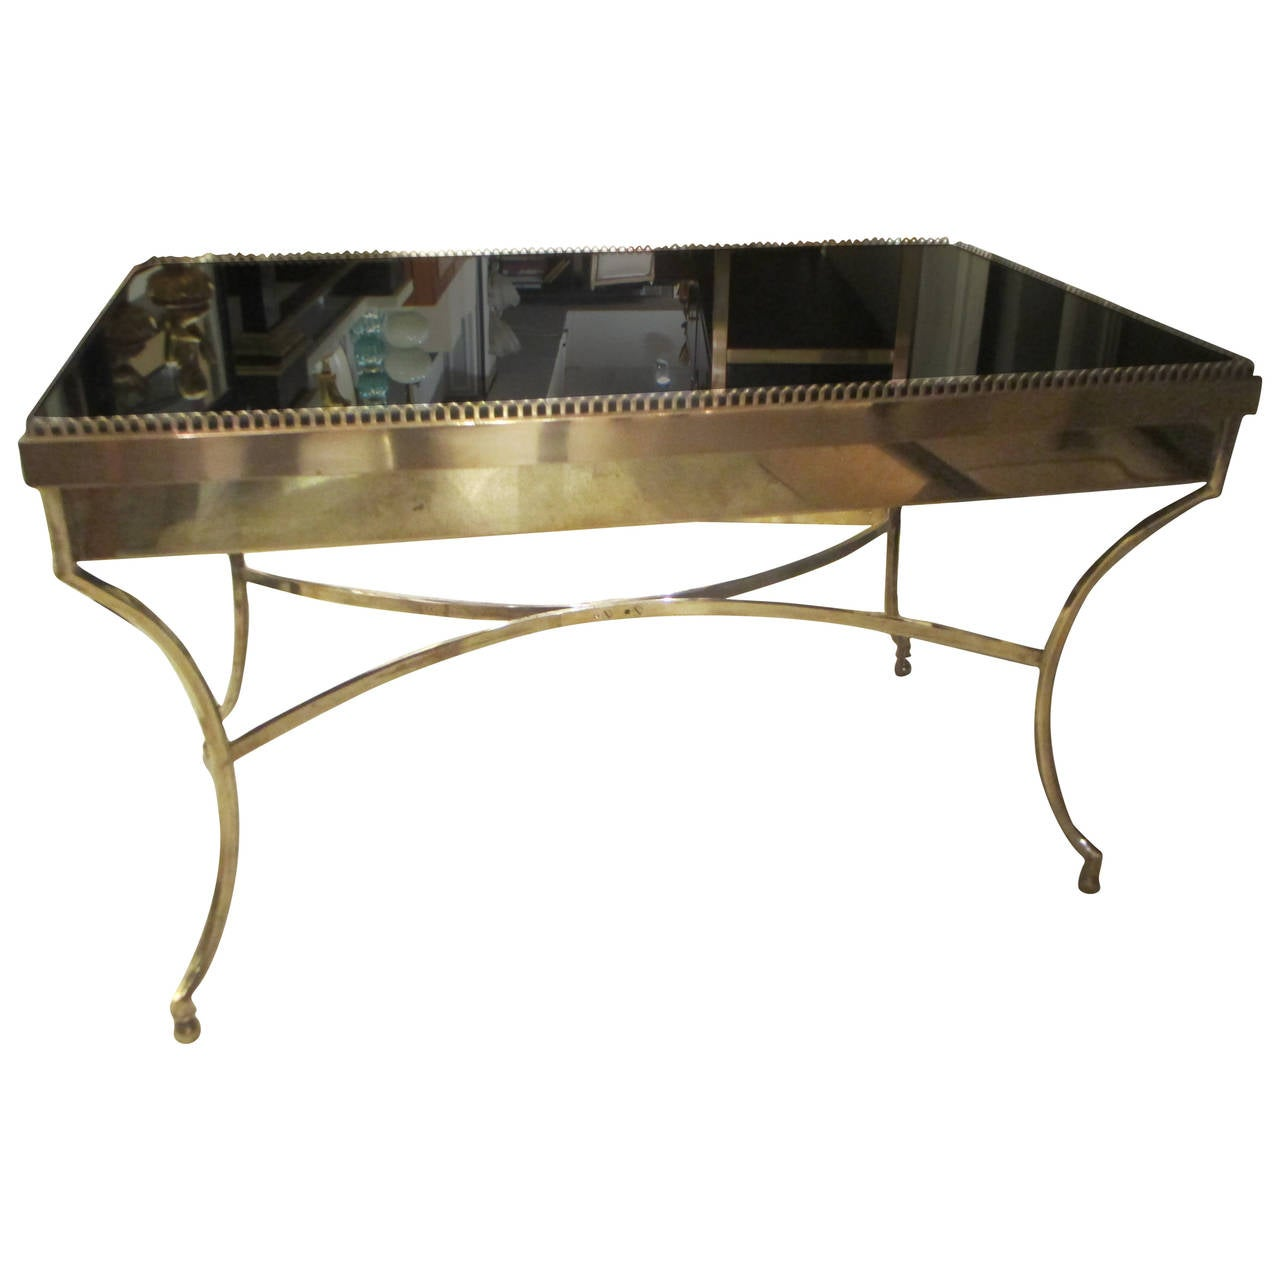 Brass Coffee Table with Smoked Glass and Galleried Top